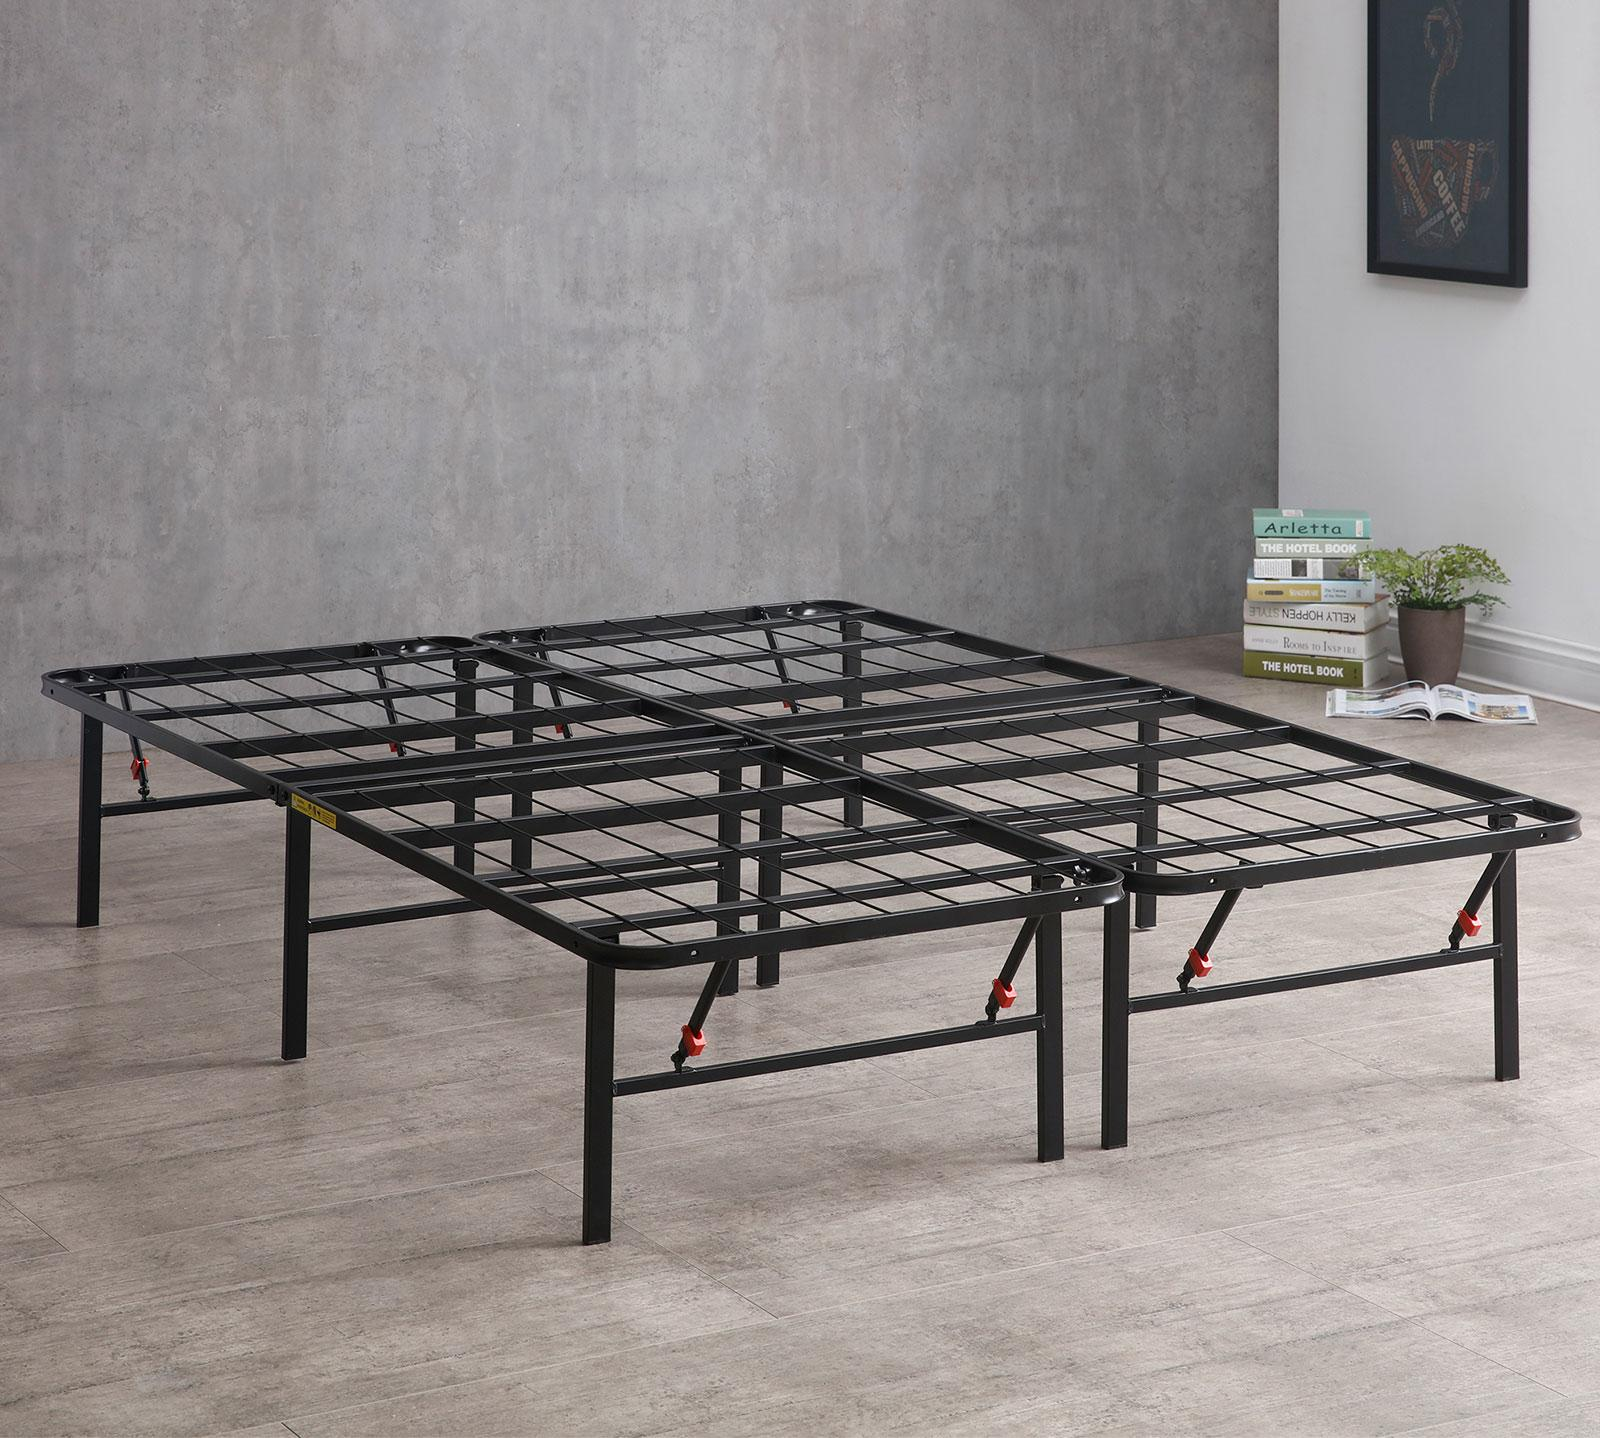 Mattress Firm Cincinnati Deluxe Raised Metal Platform Frame